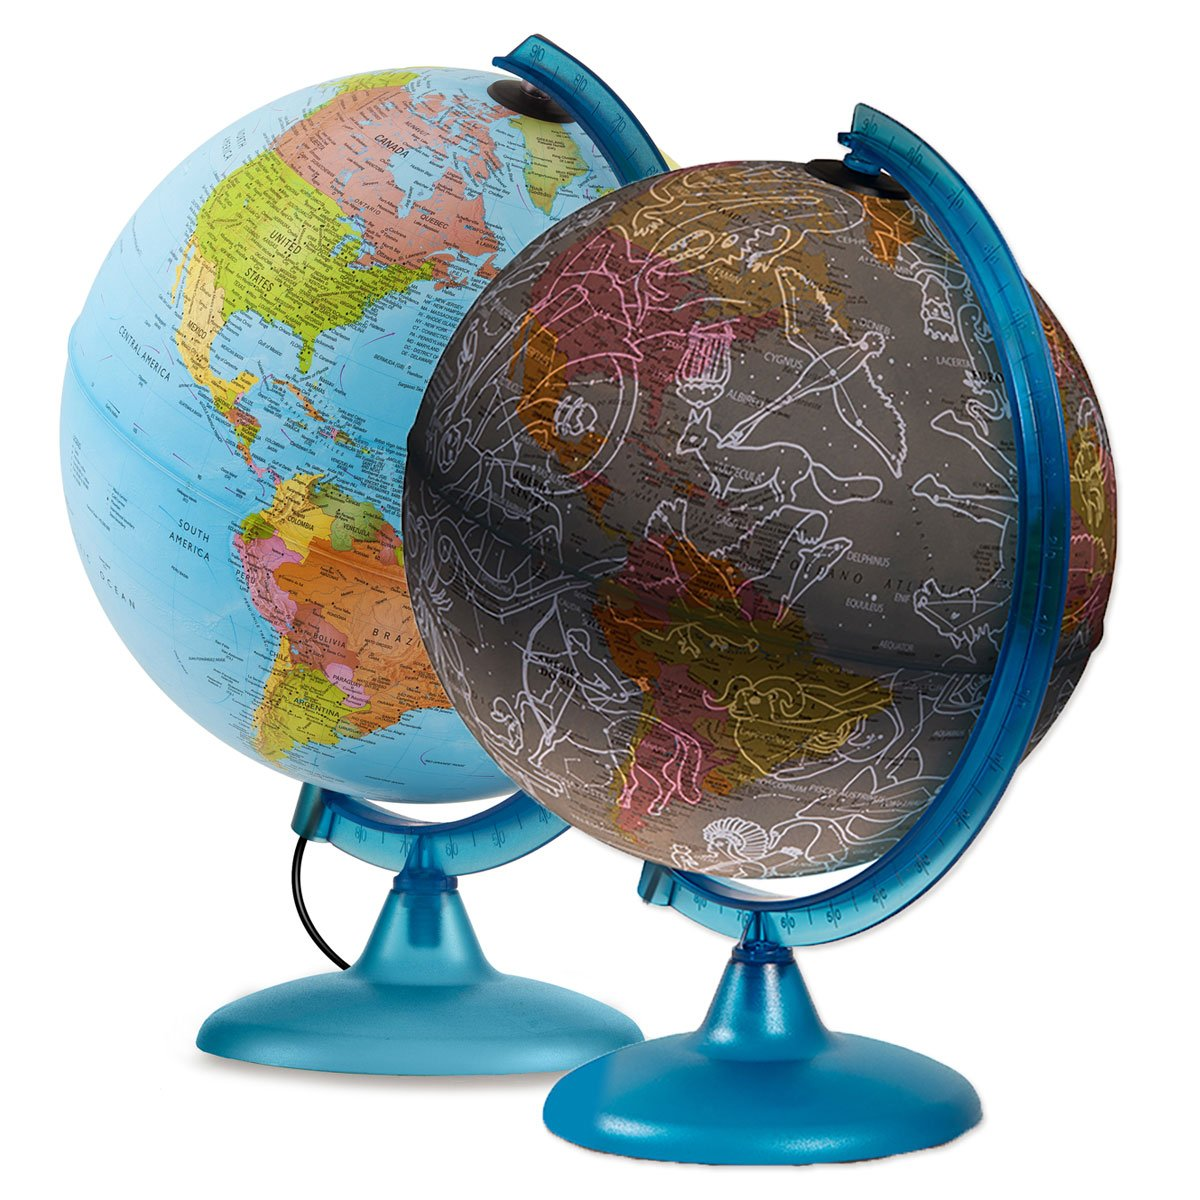 Waypoint Geographic Earth & Sky 2 in 1 Exploration Globe World, 10'' by Waypoint Geographic